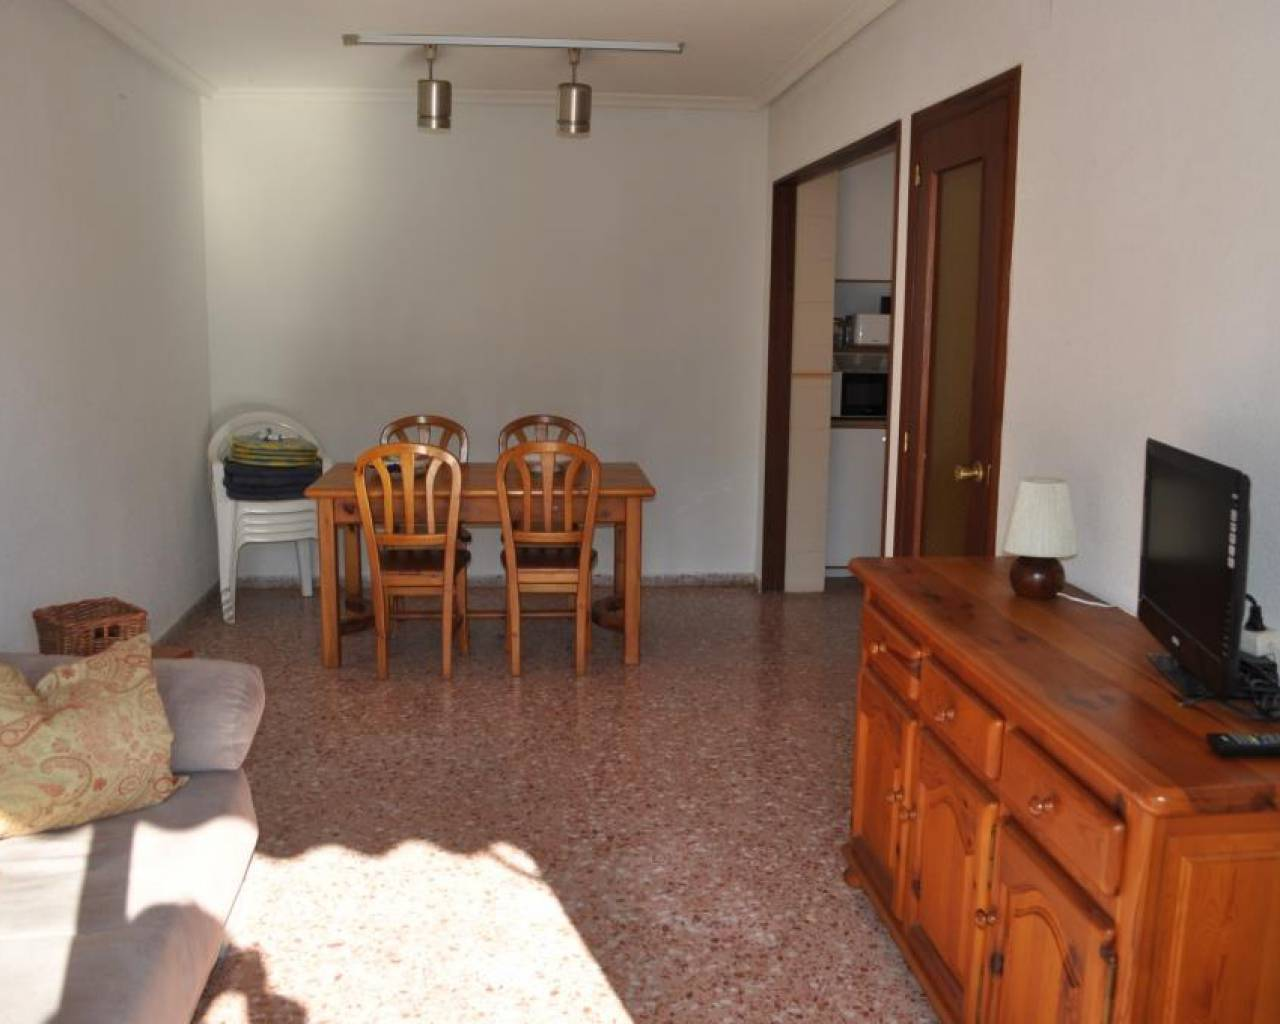 Sale - Apartment / Flat - Villajoyosa - Plage du Centre